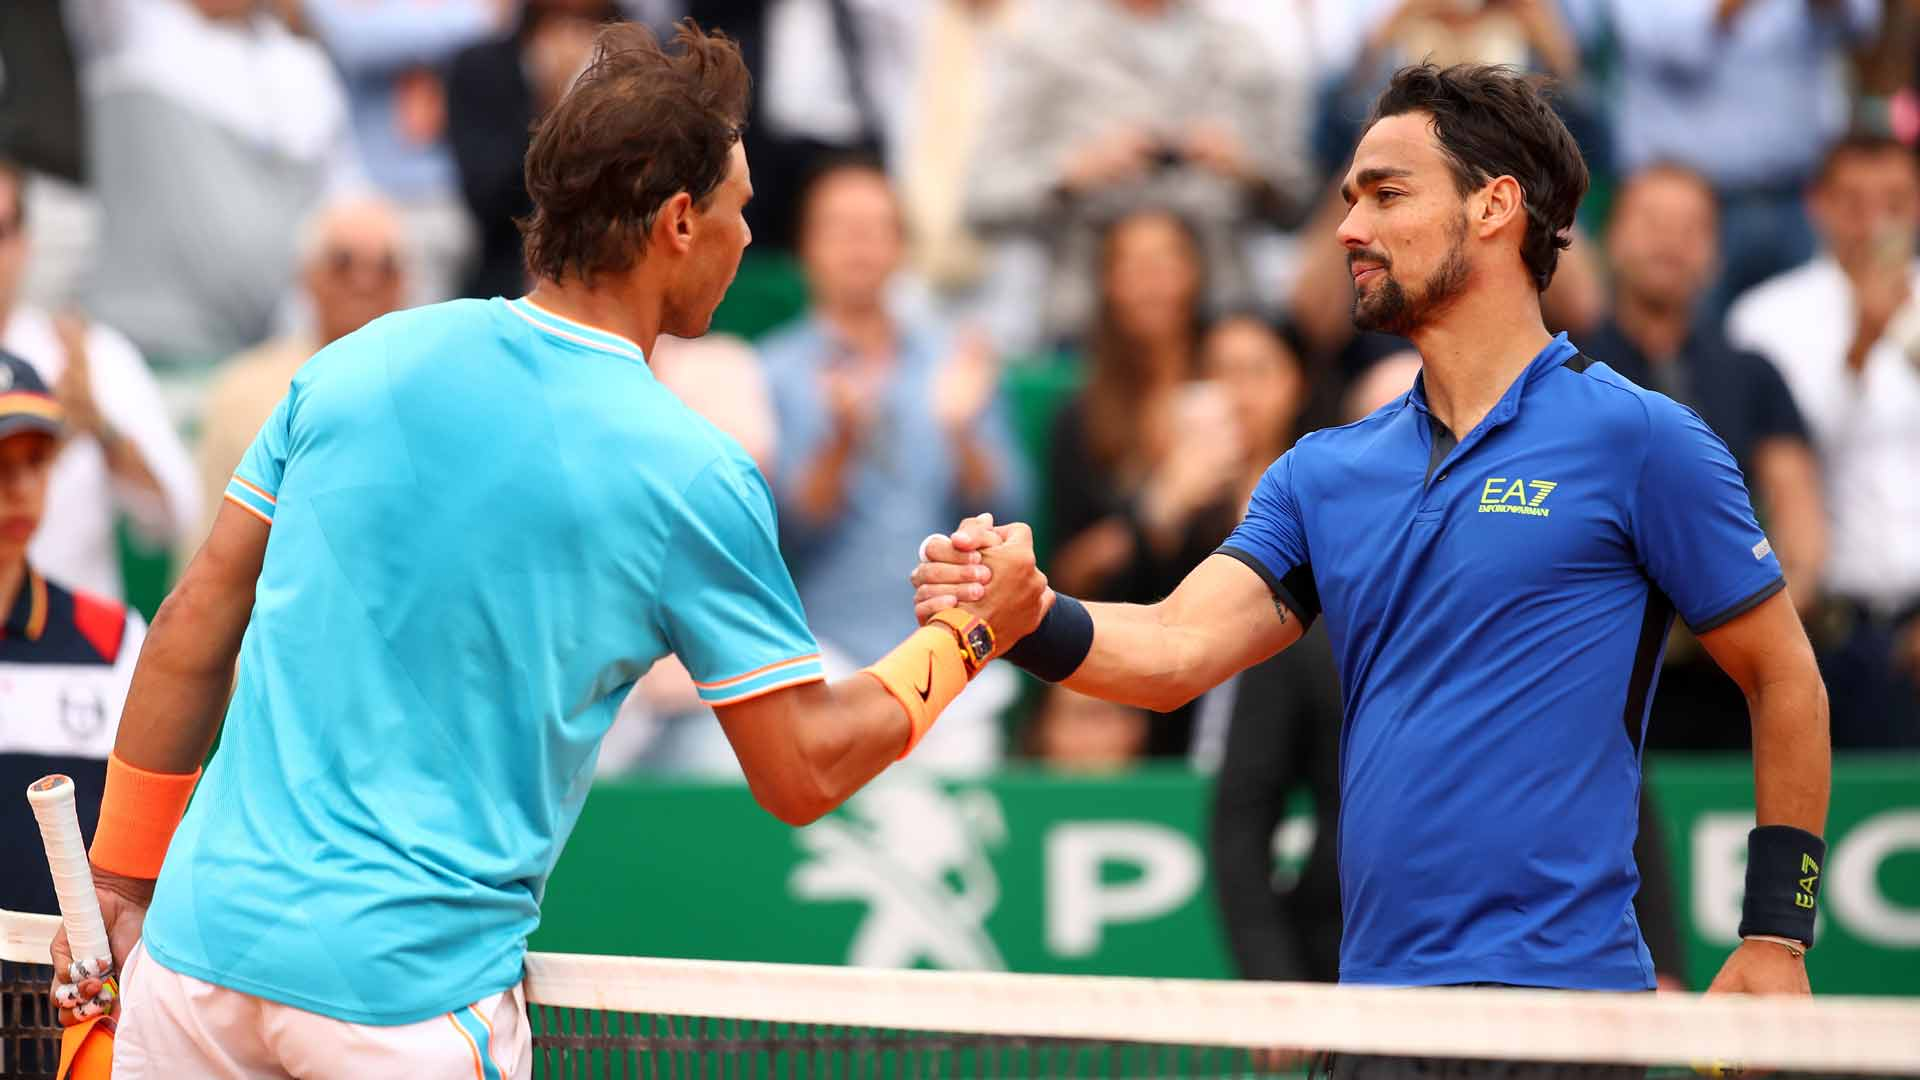 Rafael Nadal and Fabio Fognini shake hands after their Monte-Carlo match.